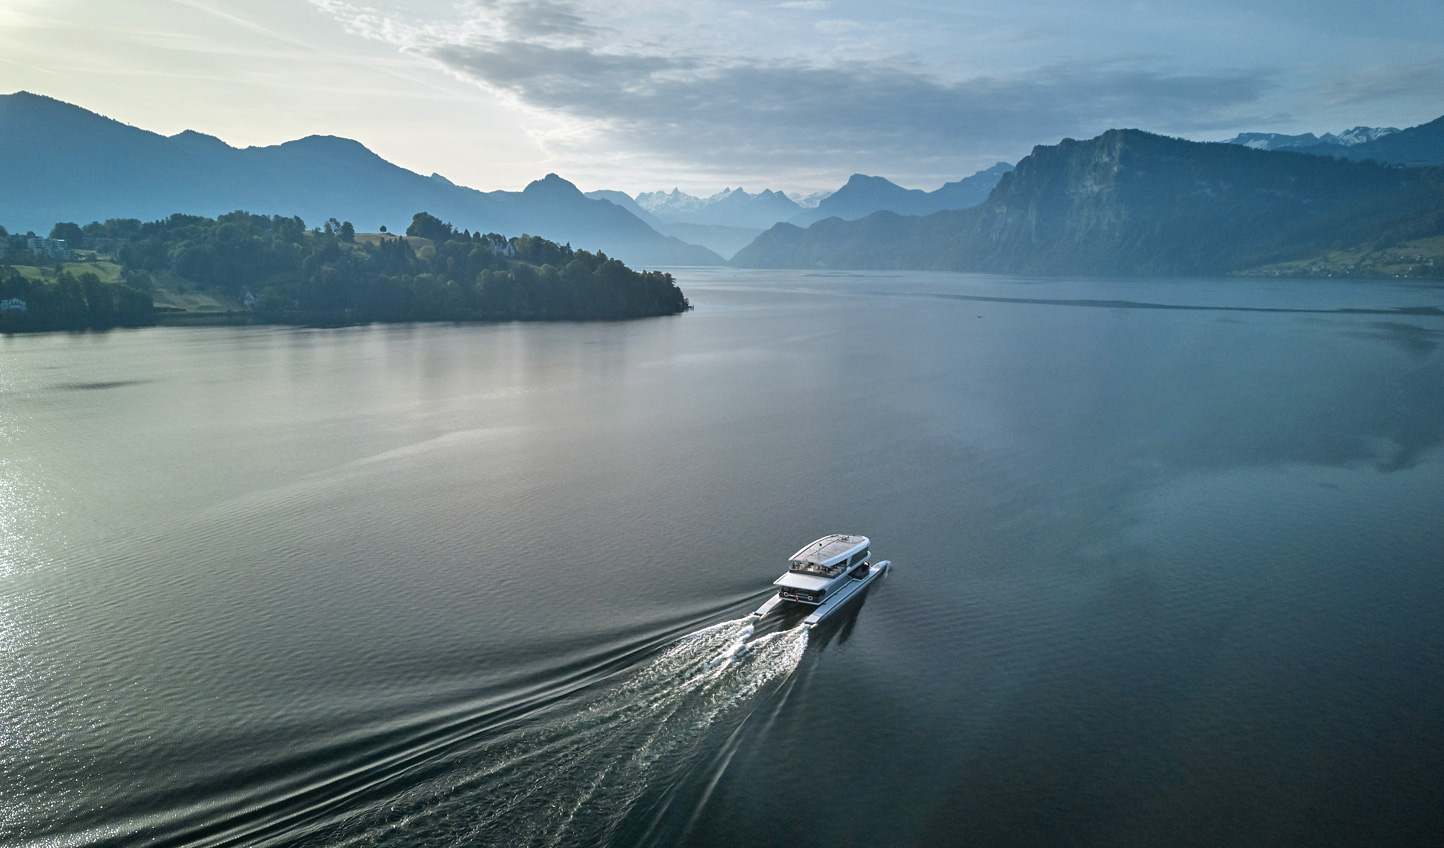 Arrive in style across the tranquil waters of Lake Lucerne1